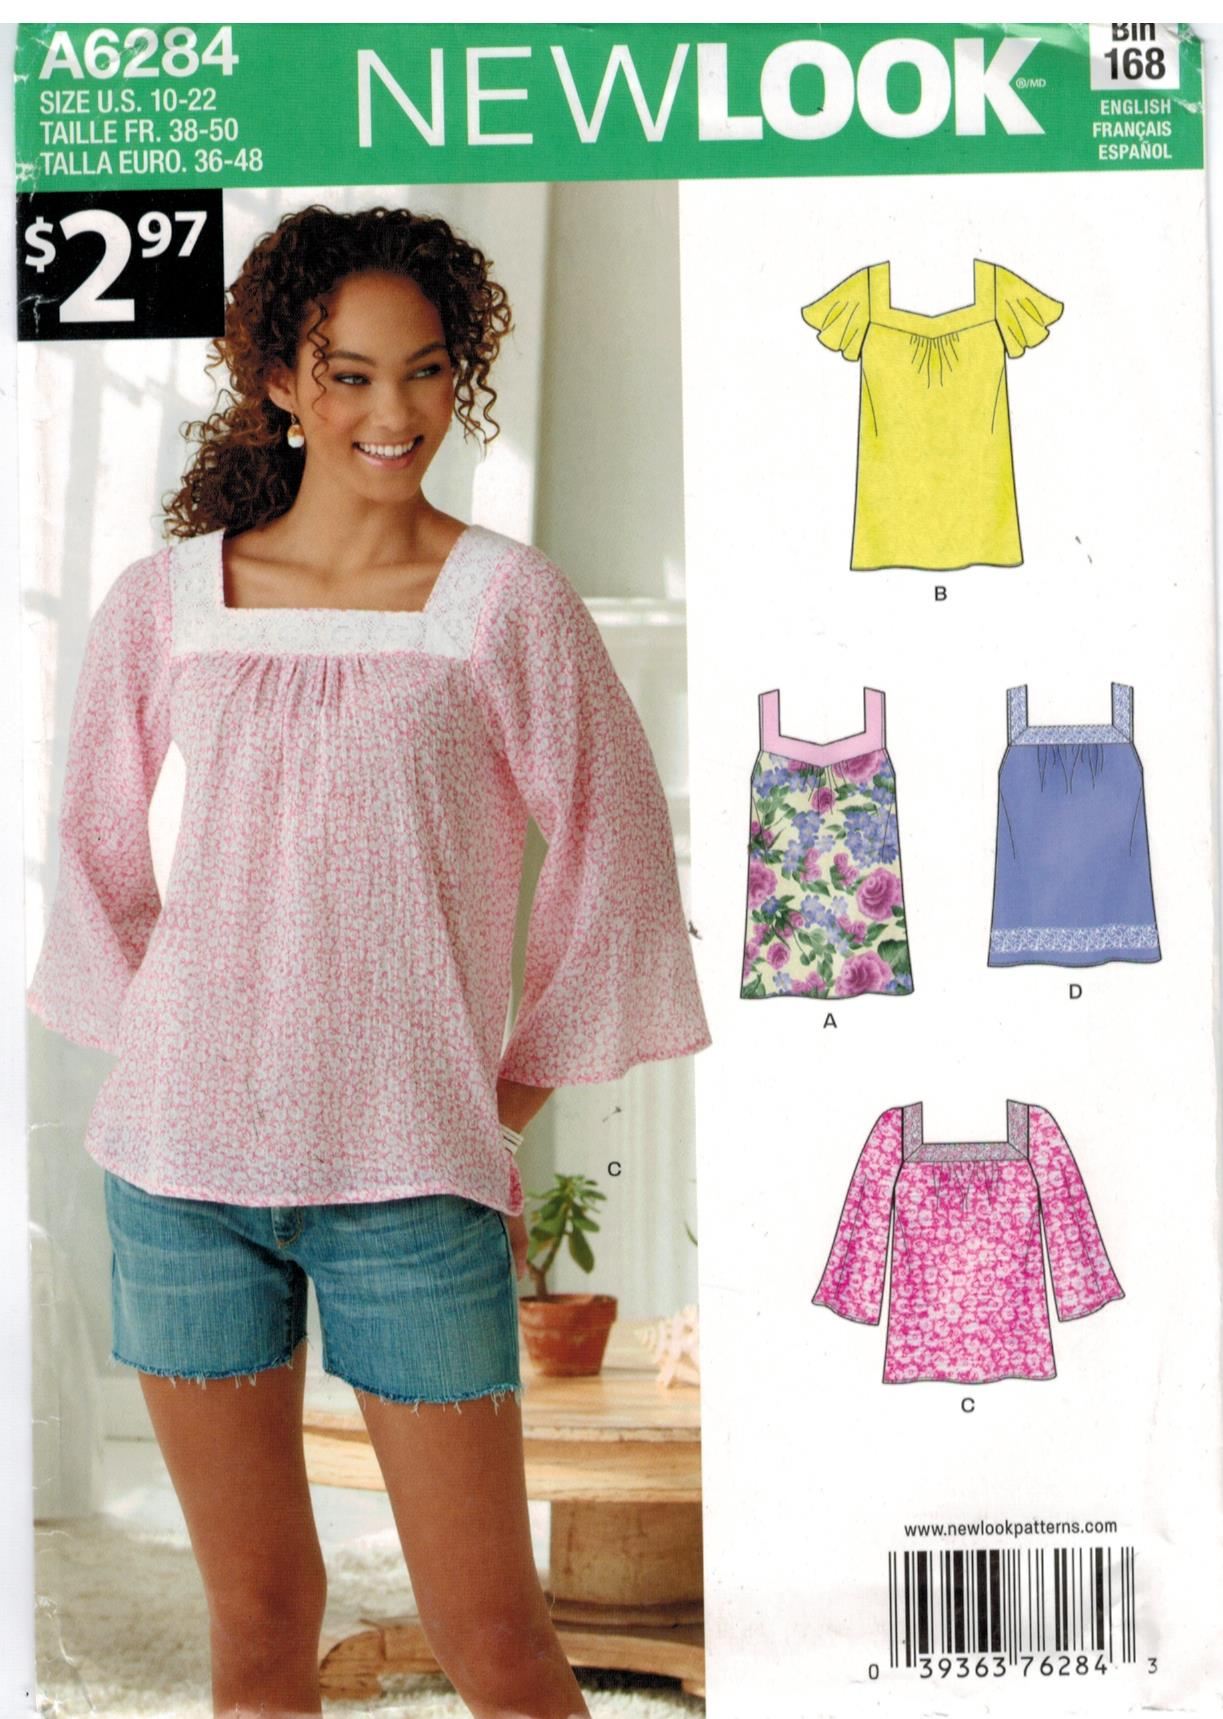 Maternity sewing pattern heaven new look pattern 6284 tunic with sleeve and neckline variations sizes 10 through 22 jeuxipadfo Choice Image